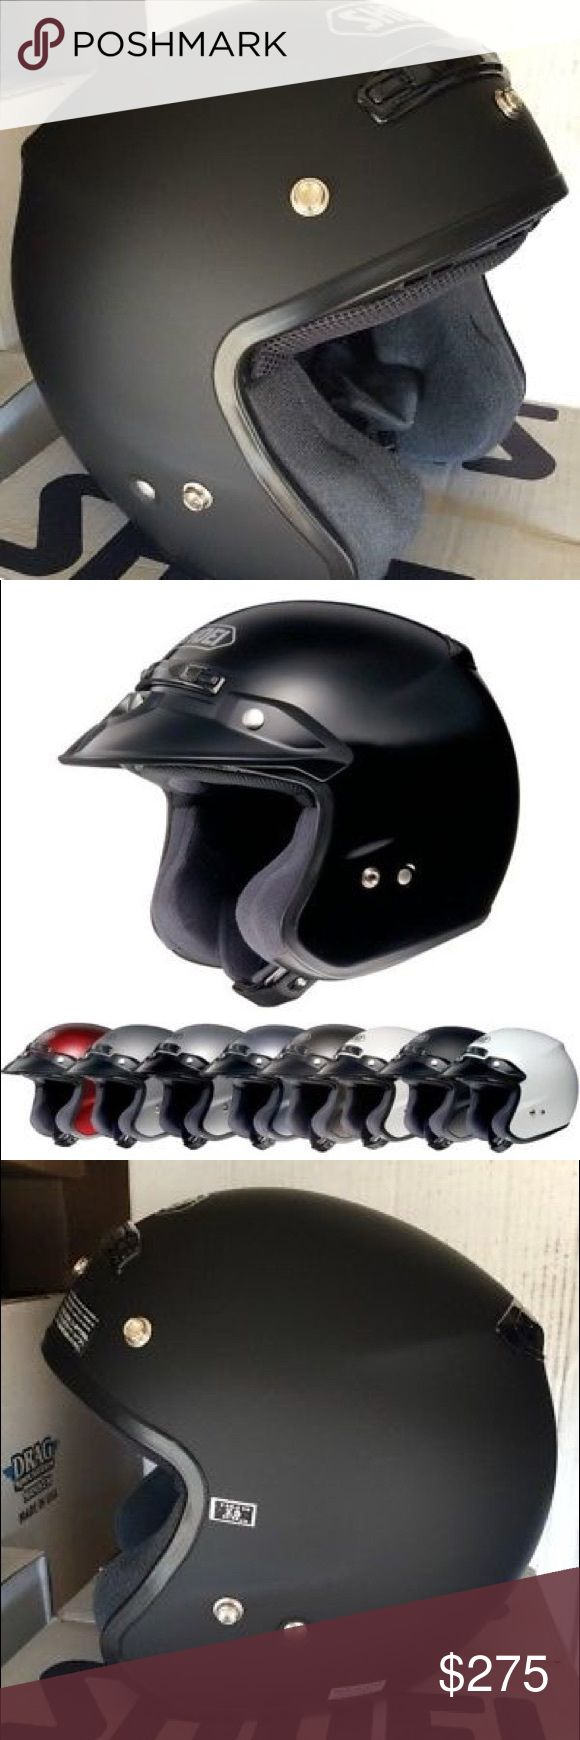 XS SHOEI RJ PLATINUM MATTE BLACK MOTORCYCLE HELMET XS SHOEI RJ PLATINUM R MATTE BLACK MOTORCYCLE HELMET  DOT/SNELL(M2005)   REMOVED FROM BOX FOR PICS  Standard Fully Removable Interiors   Lightweight, Advanced Integrated Matrix (AIM +)   Shell Snaps for aftermarket shields   Cheek pad slits for eyeglasses   Neck outlet Dual EPS liner 3D   Comfort liner Integrated spoiler   Removable GT visor Adjustable top and rear vents   Soft and Comfortable Shock-Absorbent liner Shoei Accessories Hats